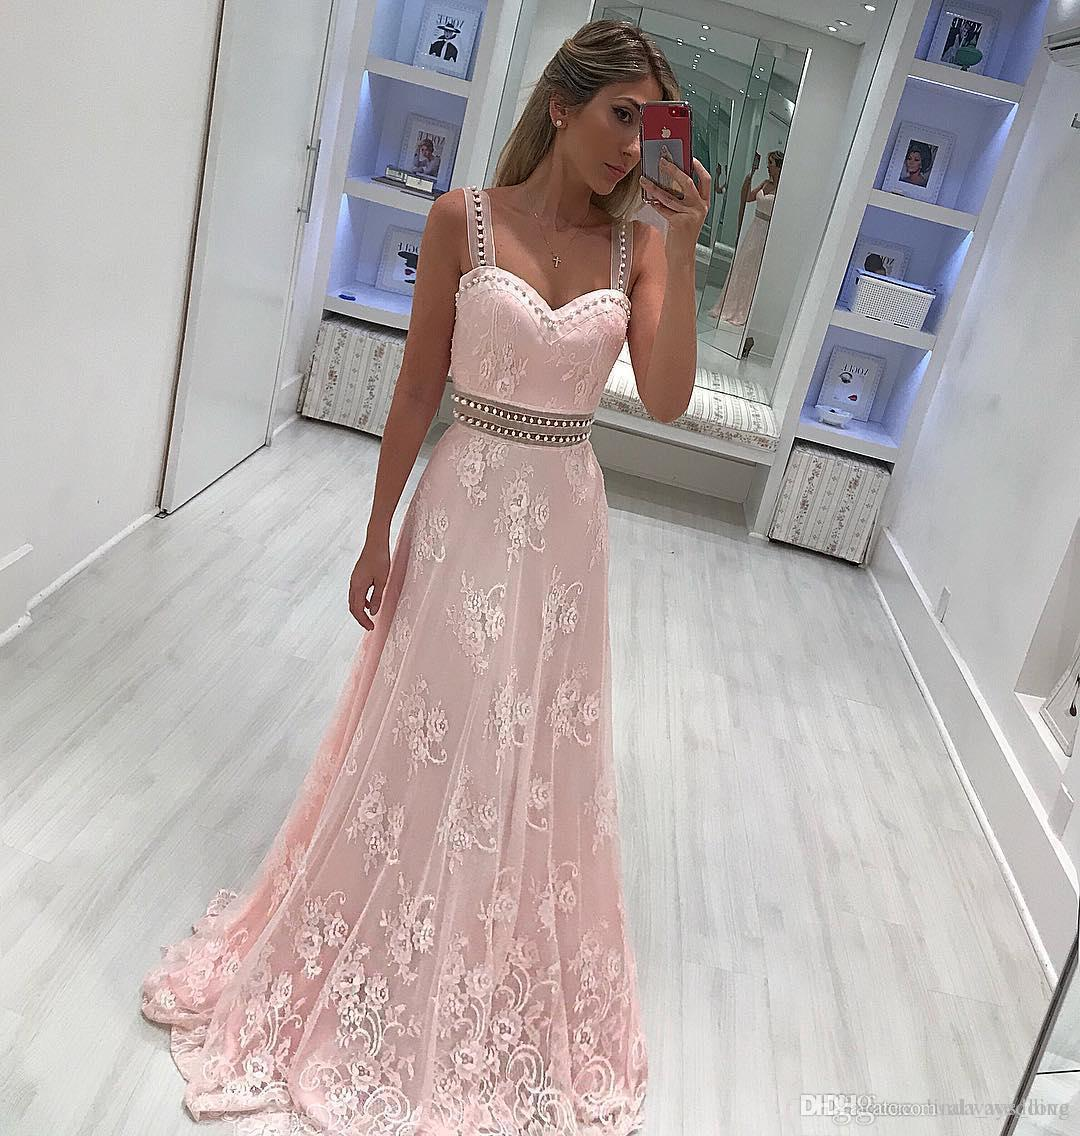 01655e31a8c 2018 Light Pink Prom Dress Spaghetti Straps Lace Long Formal Pageant  Holidays Wear Graduation Evening Party Gown Custom Made Plus Size Black Prom  Dress Camo ...